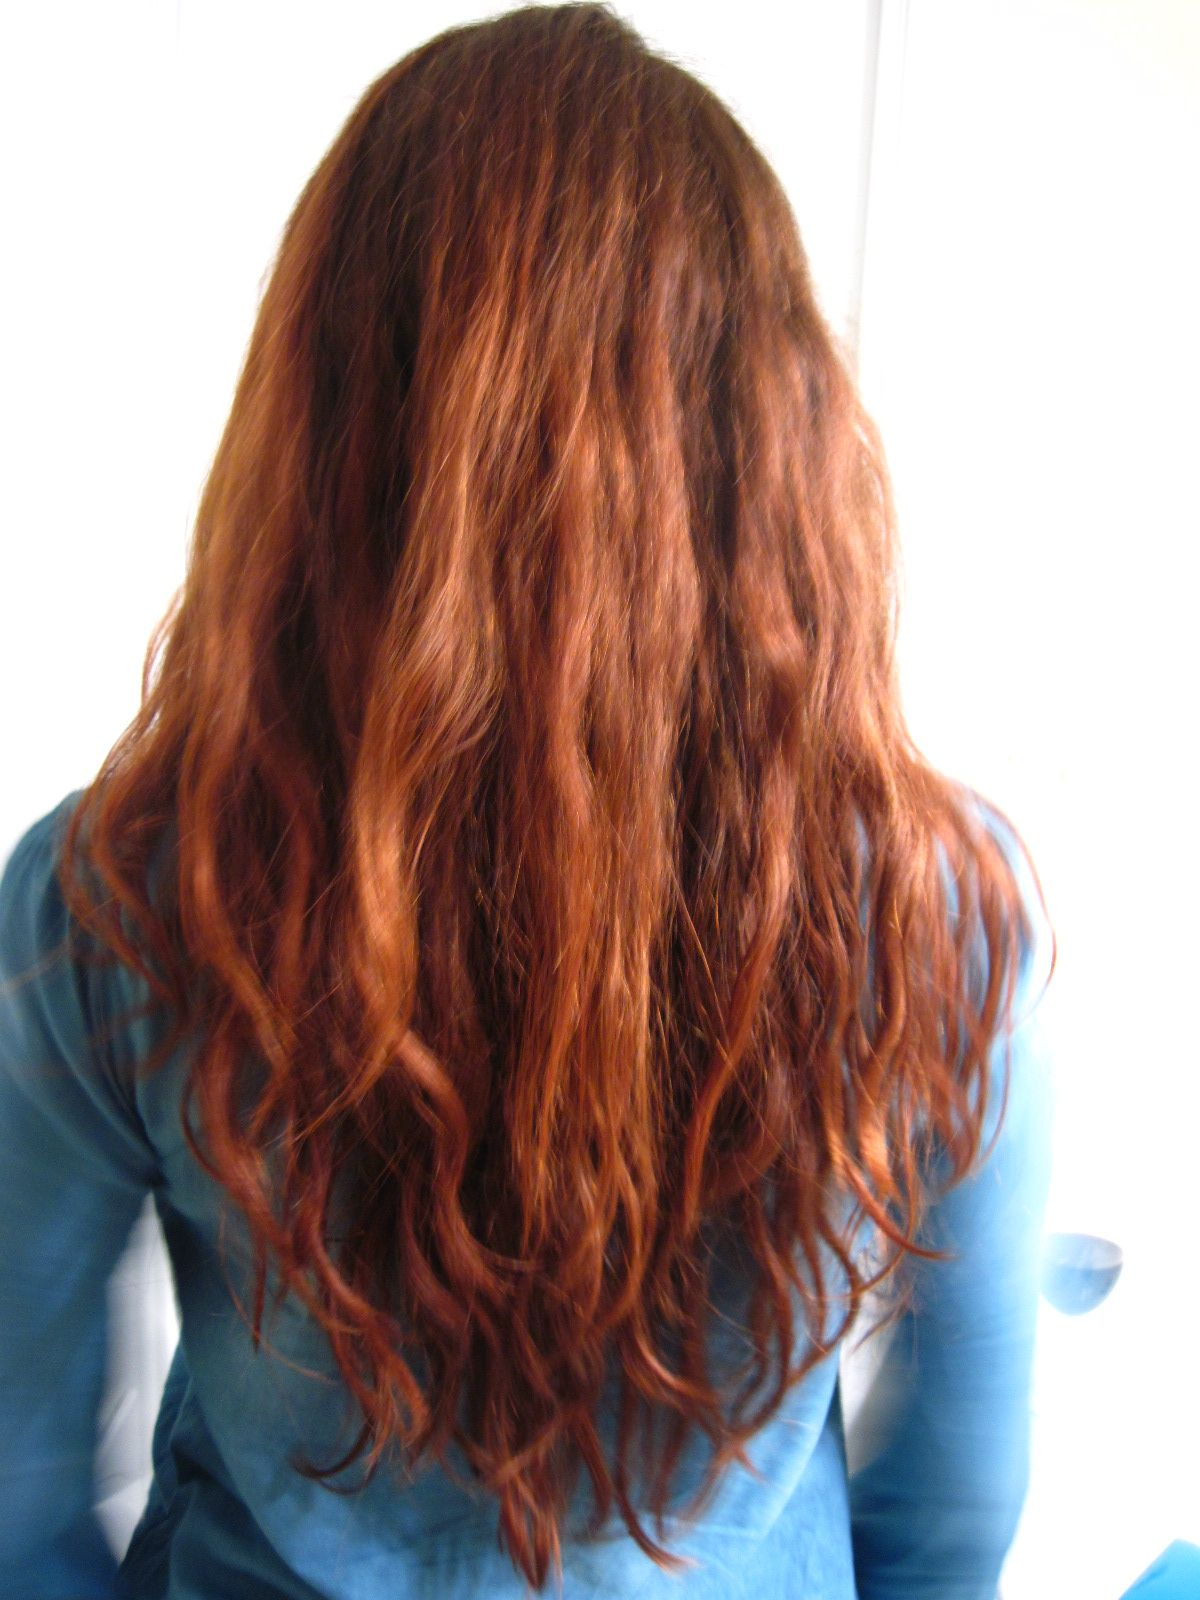 Danielle S Hair After Coloring With Light Mountain Naturals Henna